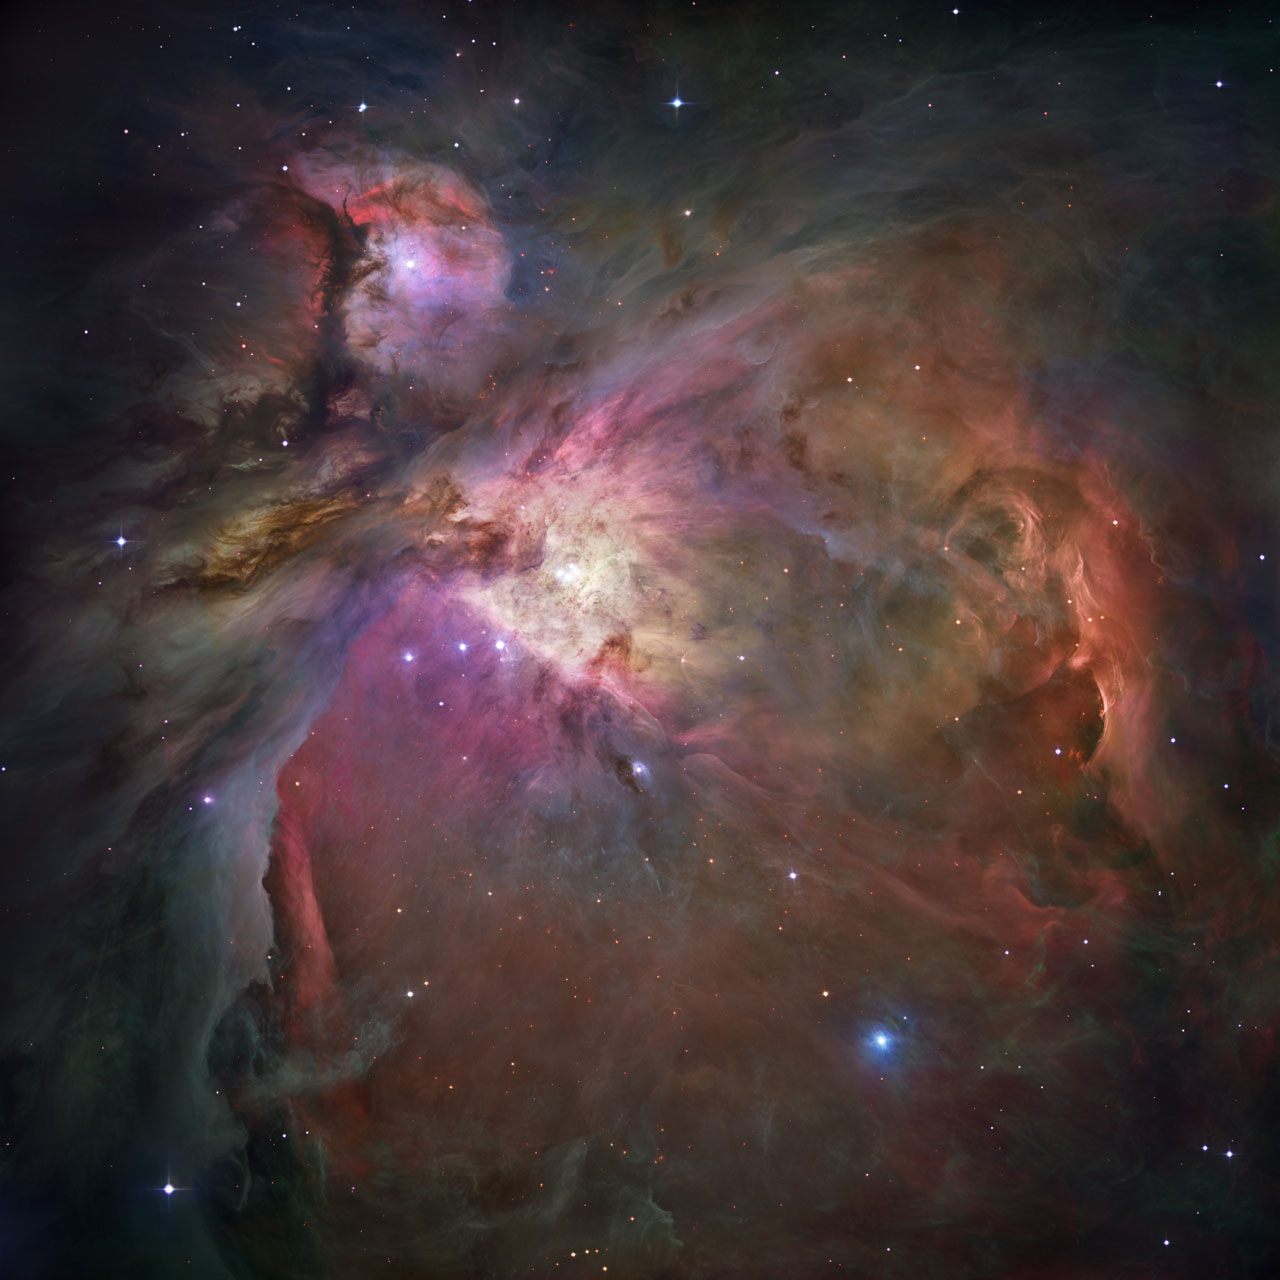 This dramatic image offers a peek inside a cavern of roiling dust and gas where thousands of stars are forming. The image, taken by the Advanced Camera for Surveys (ACS) aboard NASA/ESA Hubble Space Telescope, represents the sharpest view ever taken of this region, called the Orion Nebula. Image Credit: NASA, ESA, M. Robberto ( Space Telescope Science Institute/ESA) and the Hubble Space Telescope Orion Treasury Project Team